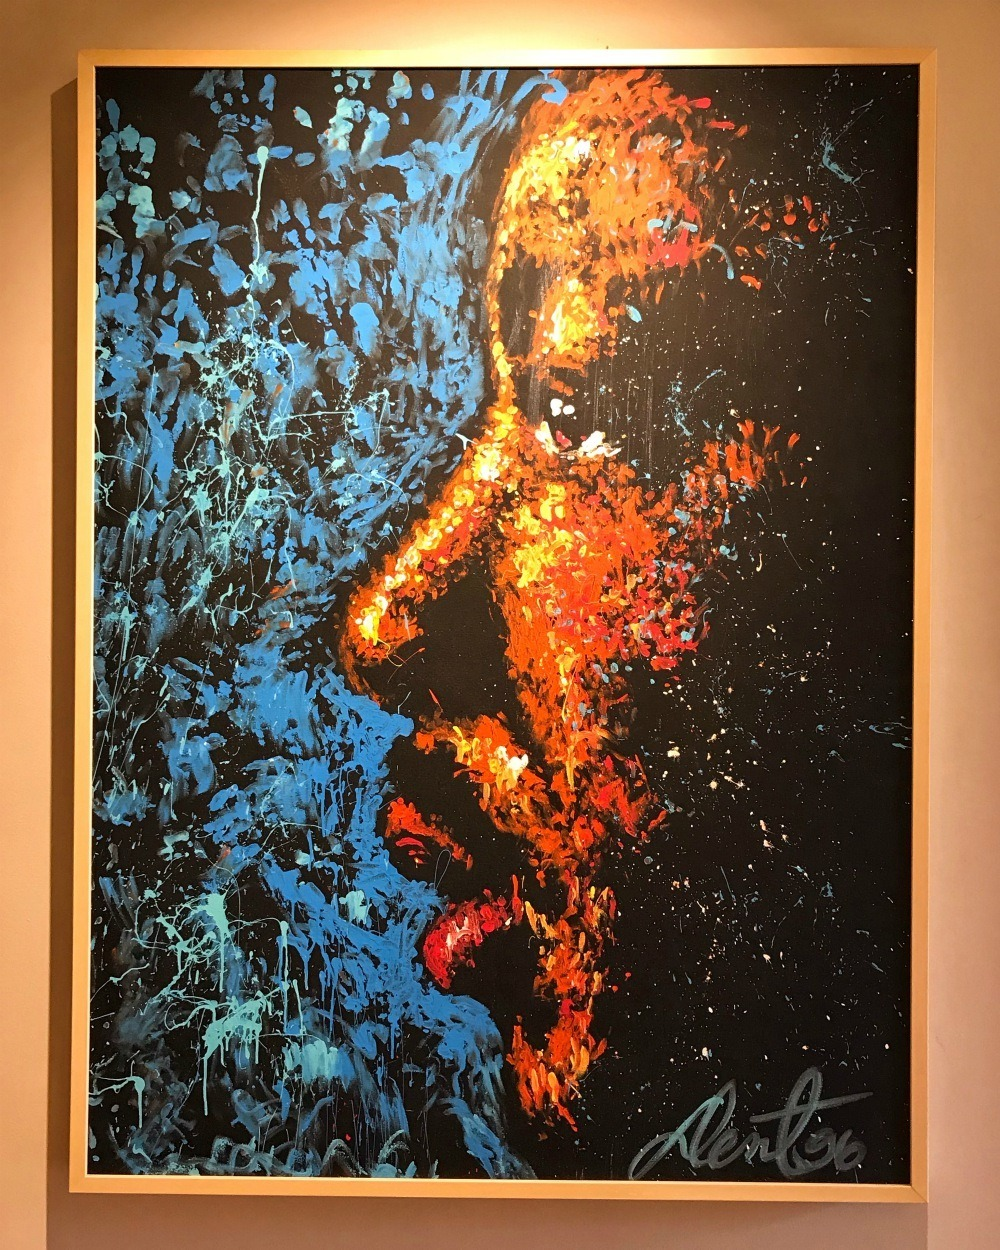 Martin Luther King portrait at Birmingham Civil Rights Institute